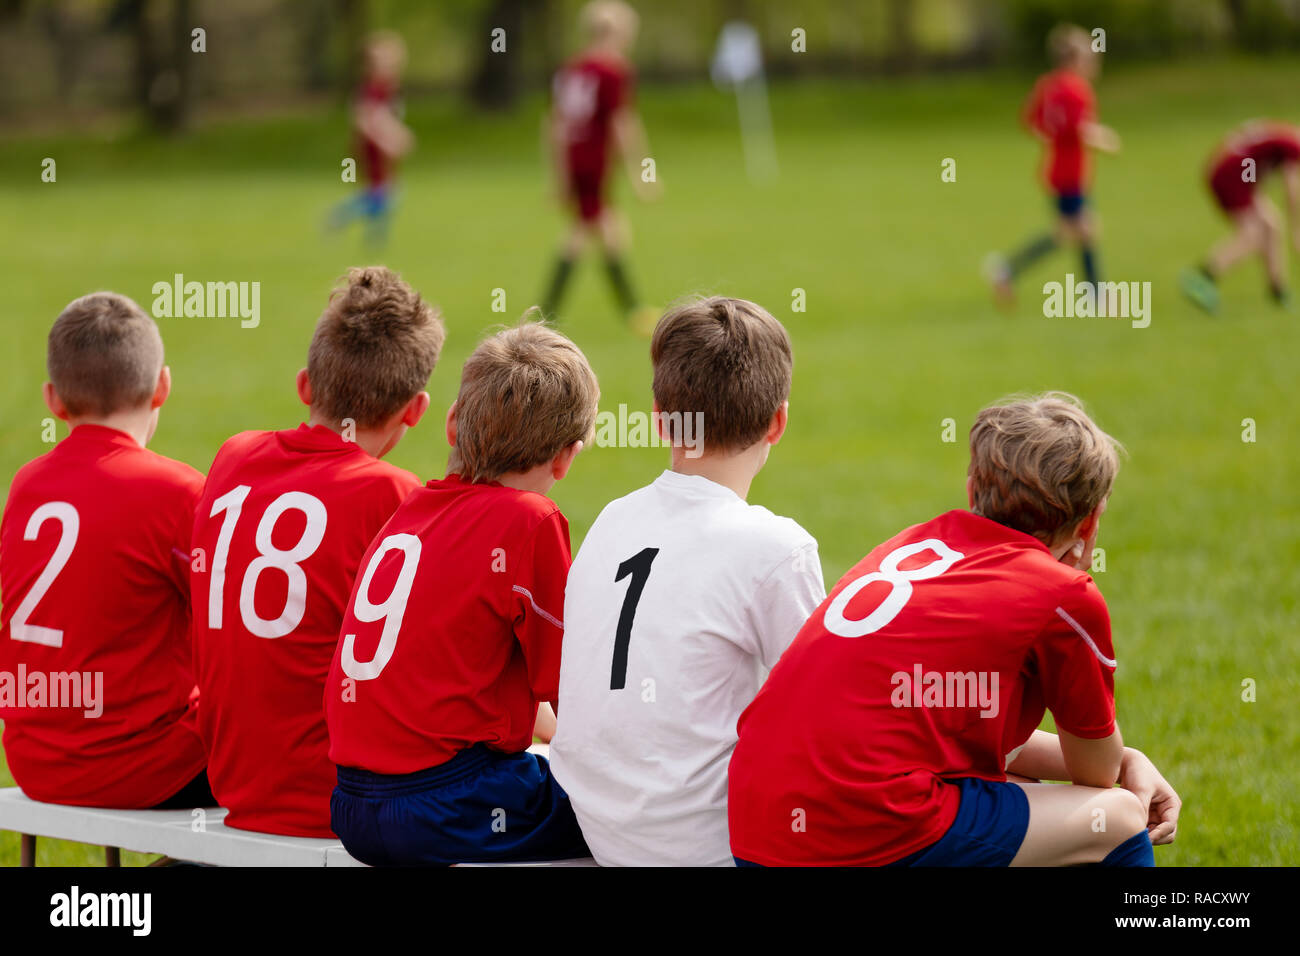 Kids Football Team. Children Football Academy. Substitute Soccer Players Sitting on Bench. Young Boys Playing European Football Game. Soccer Tournamen - Stock Image